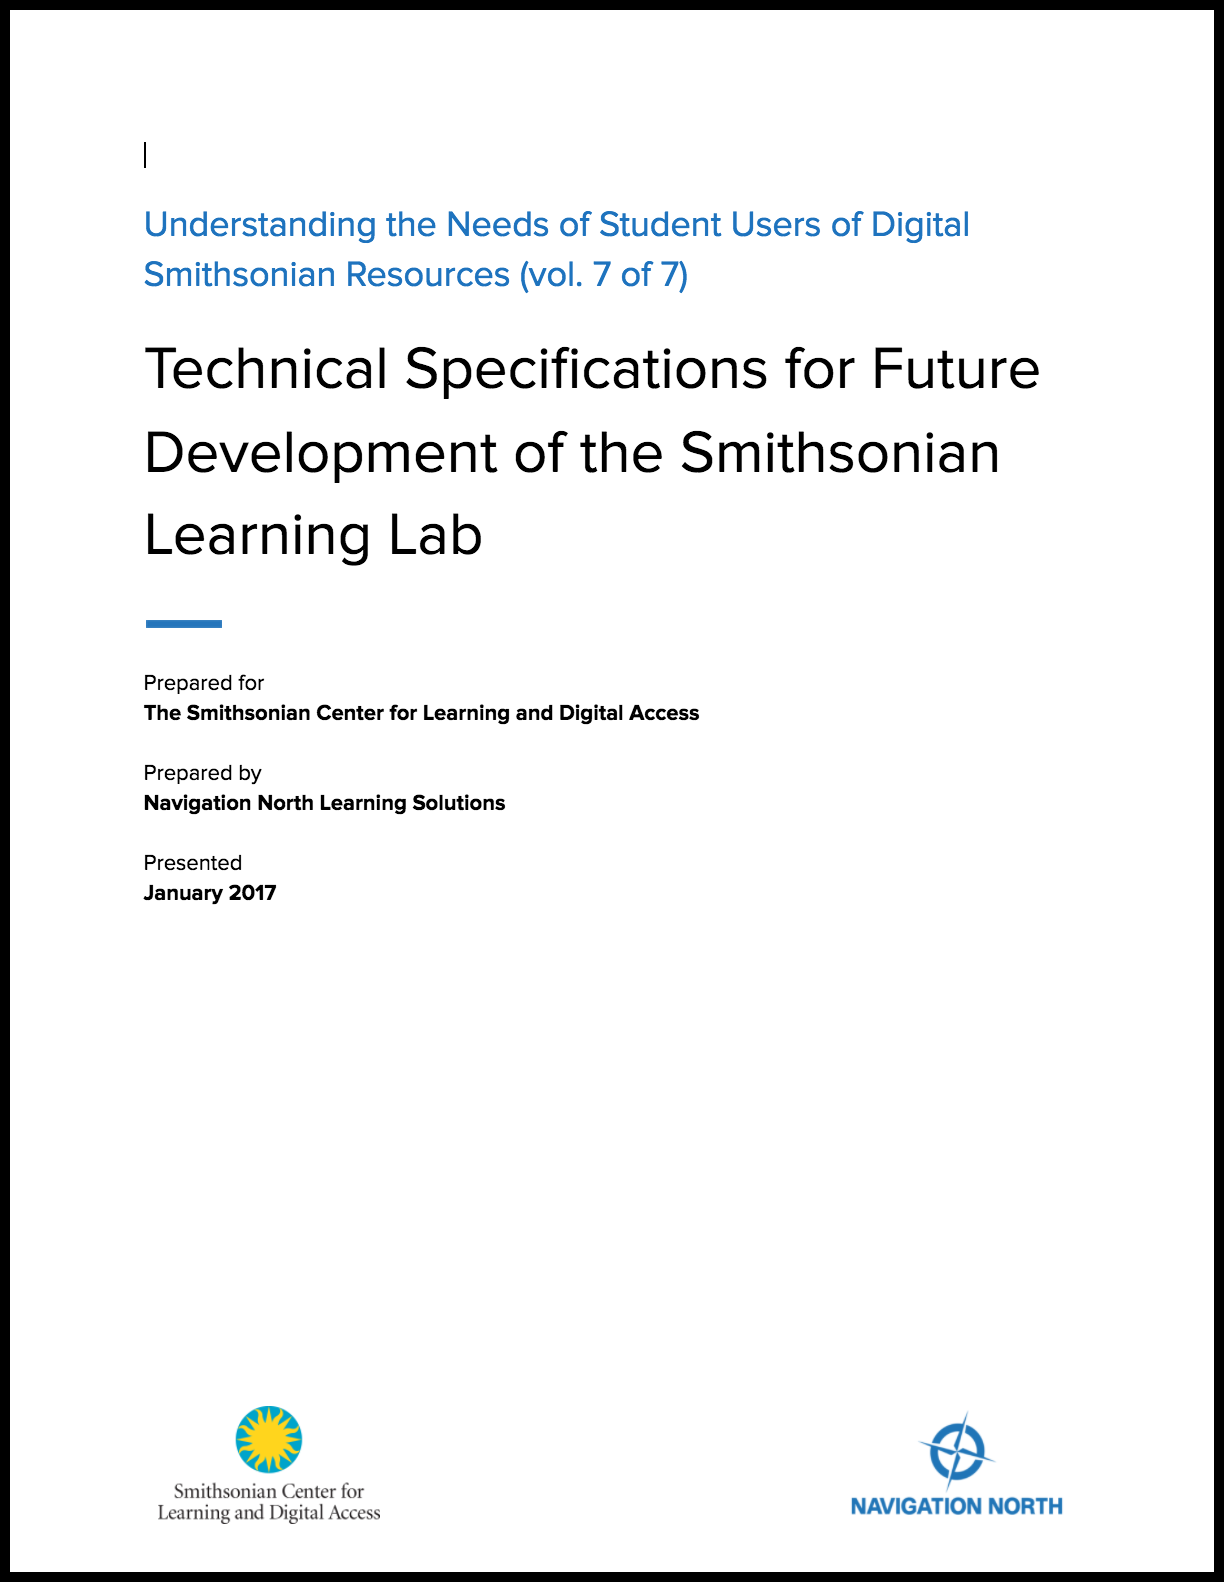 Technical Specifications for Future Development of the Smithsonian Learning Lab